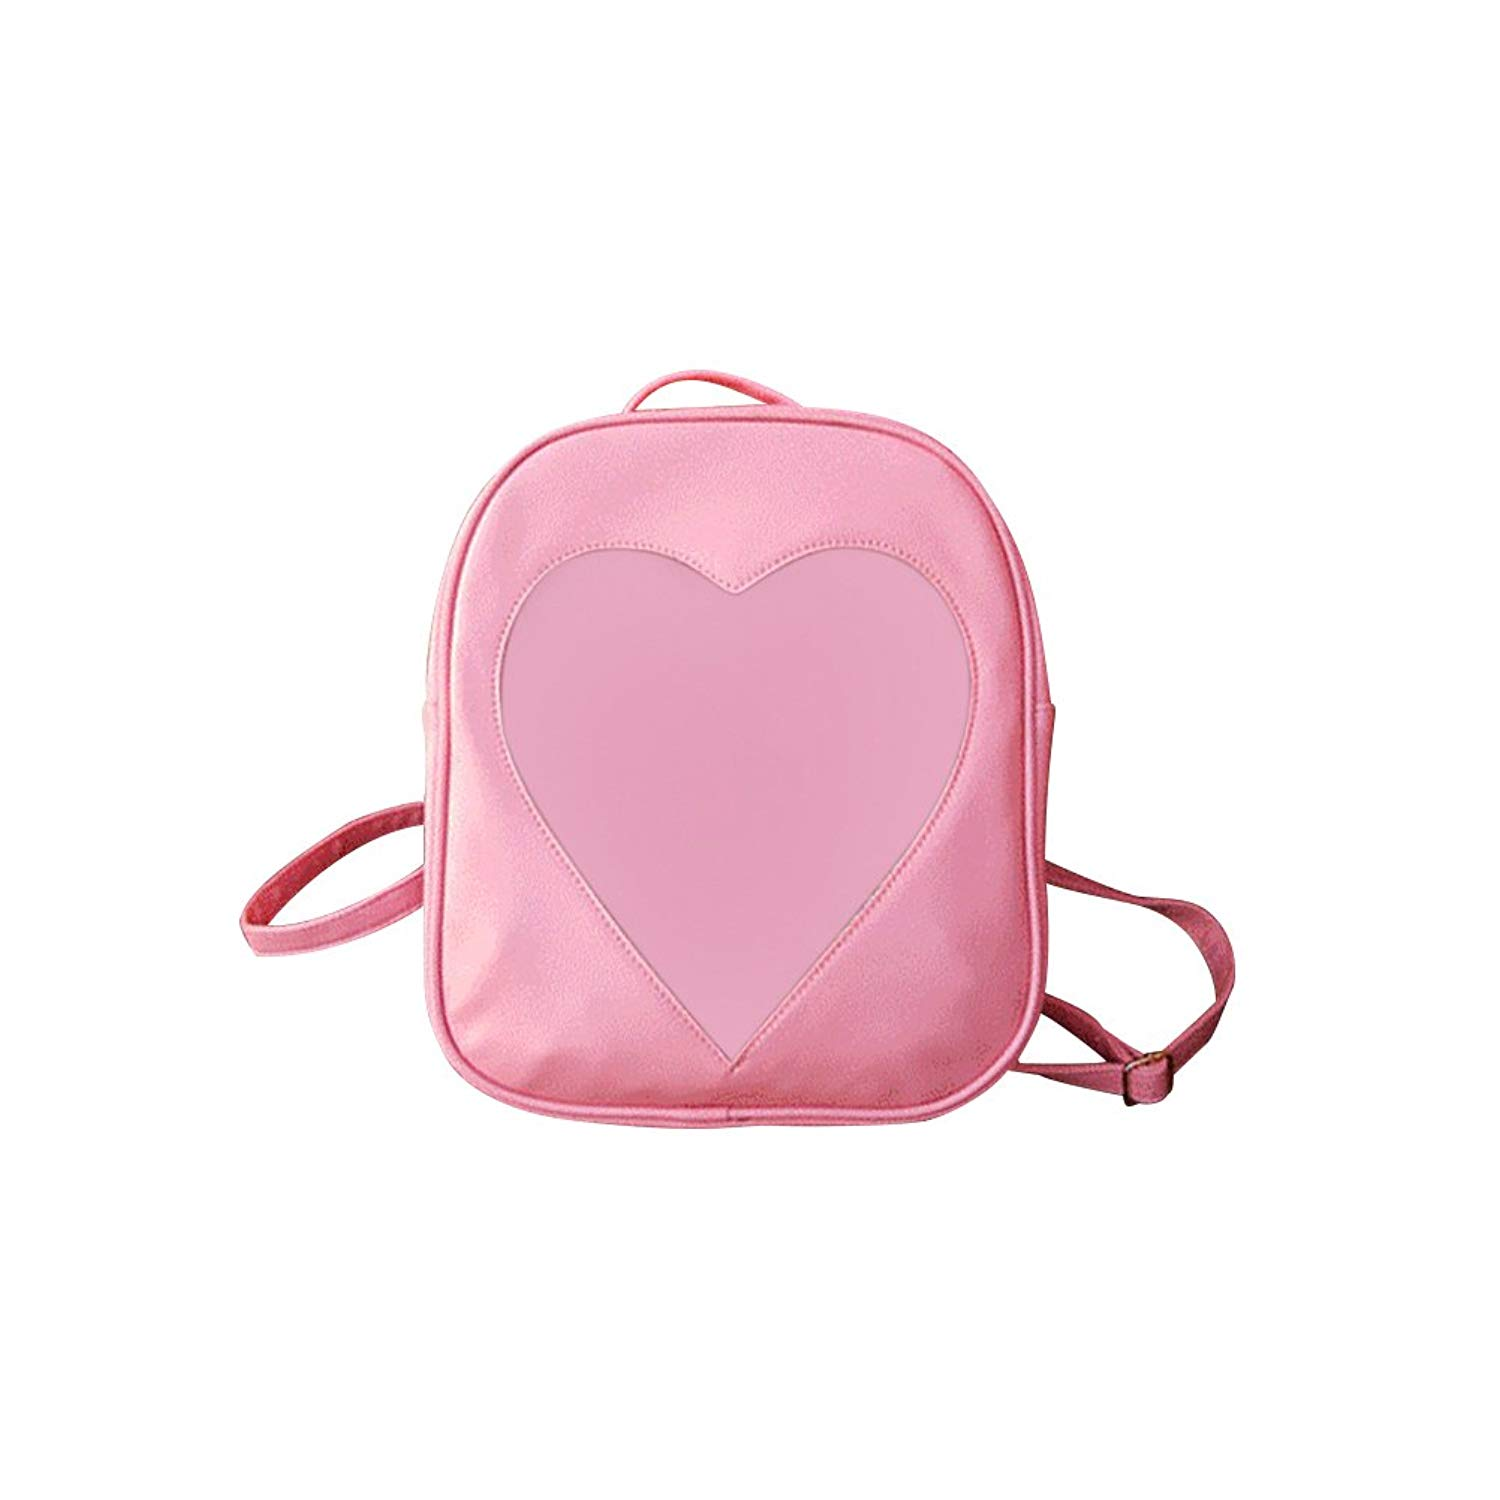 OULII Transparent PU Leather Backpack Heart Shaped Zip Closure Daypacks for Women Girls (Pink)